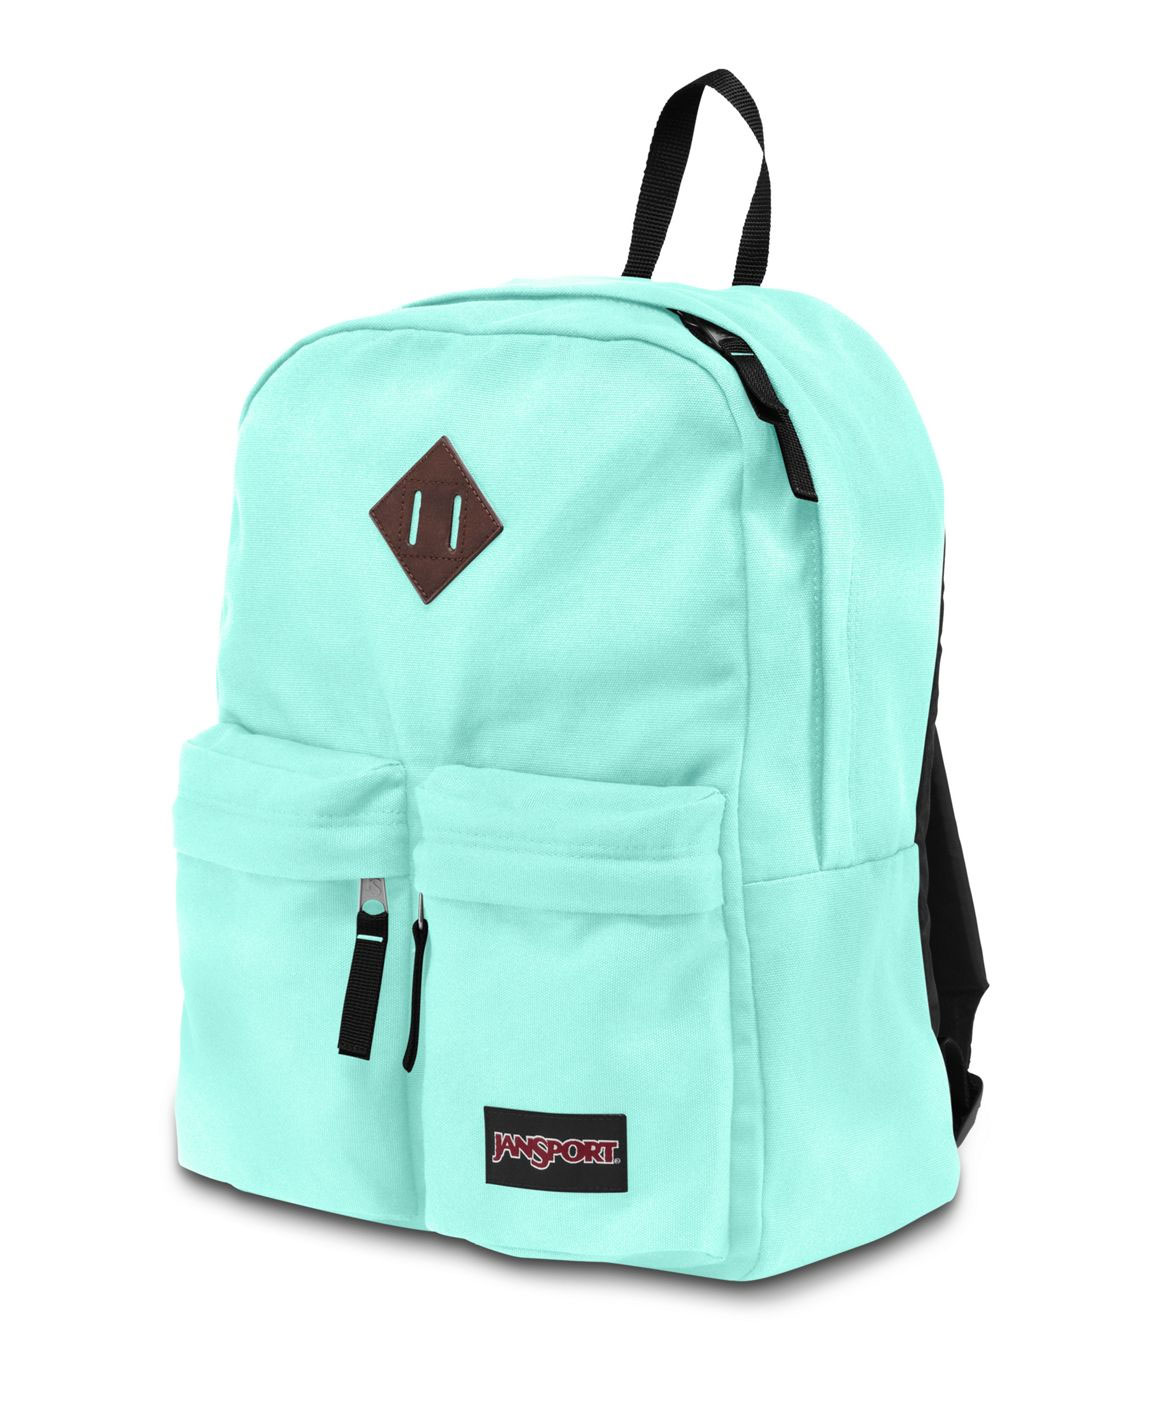 Where Can You Buy Jansport Backpacks 18eDD1ZB